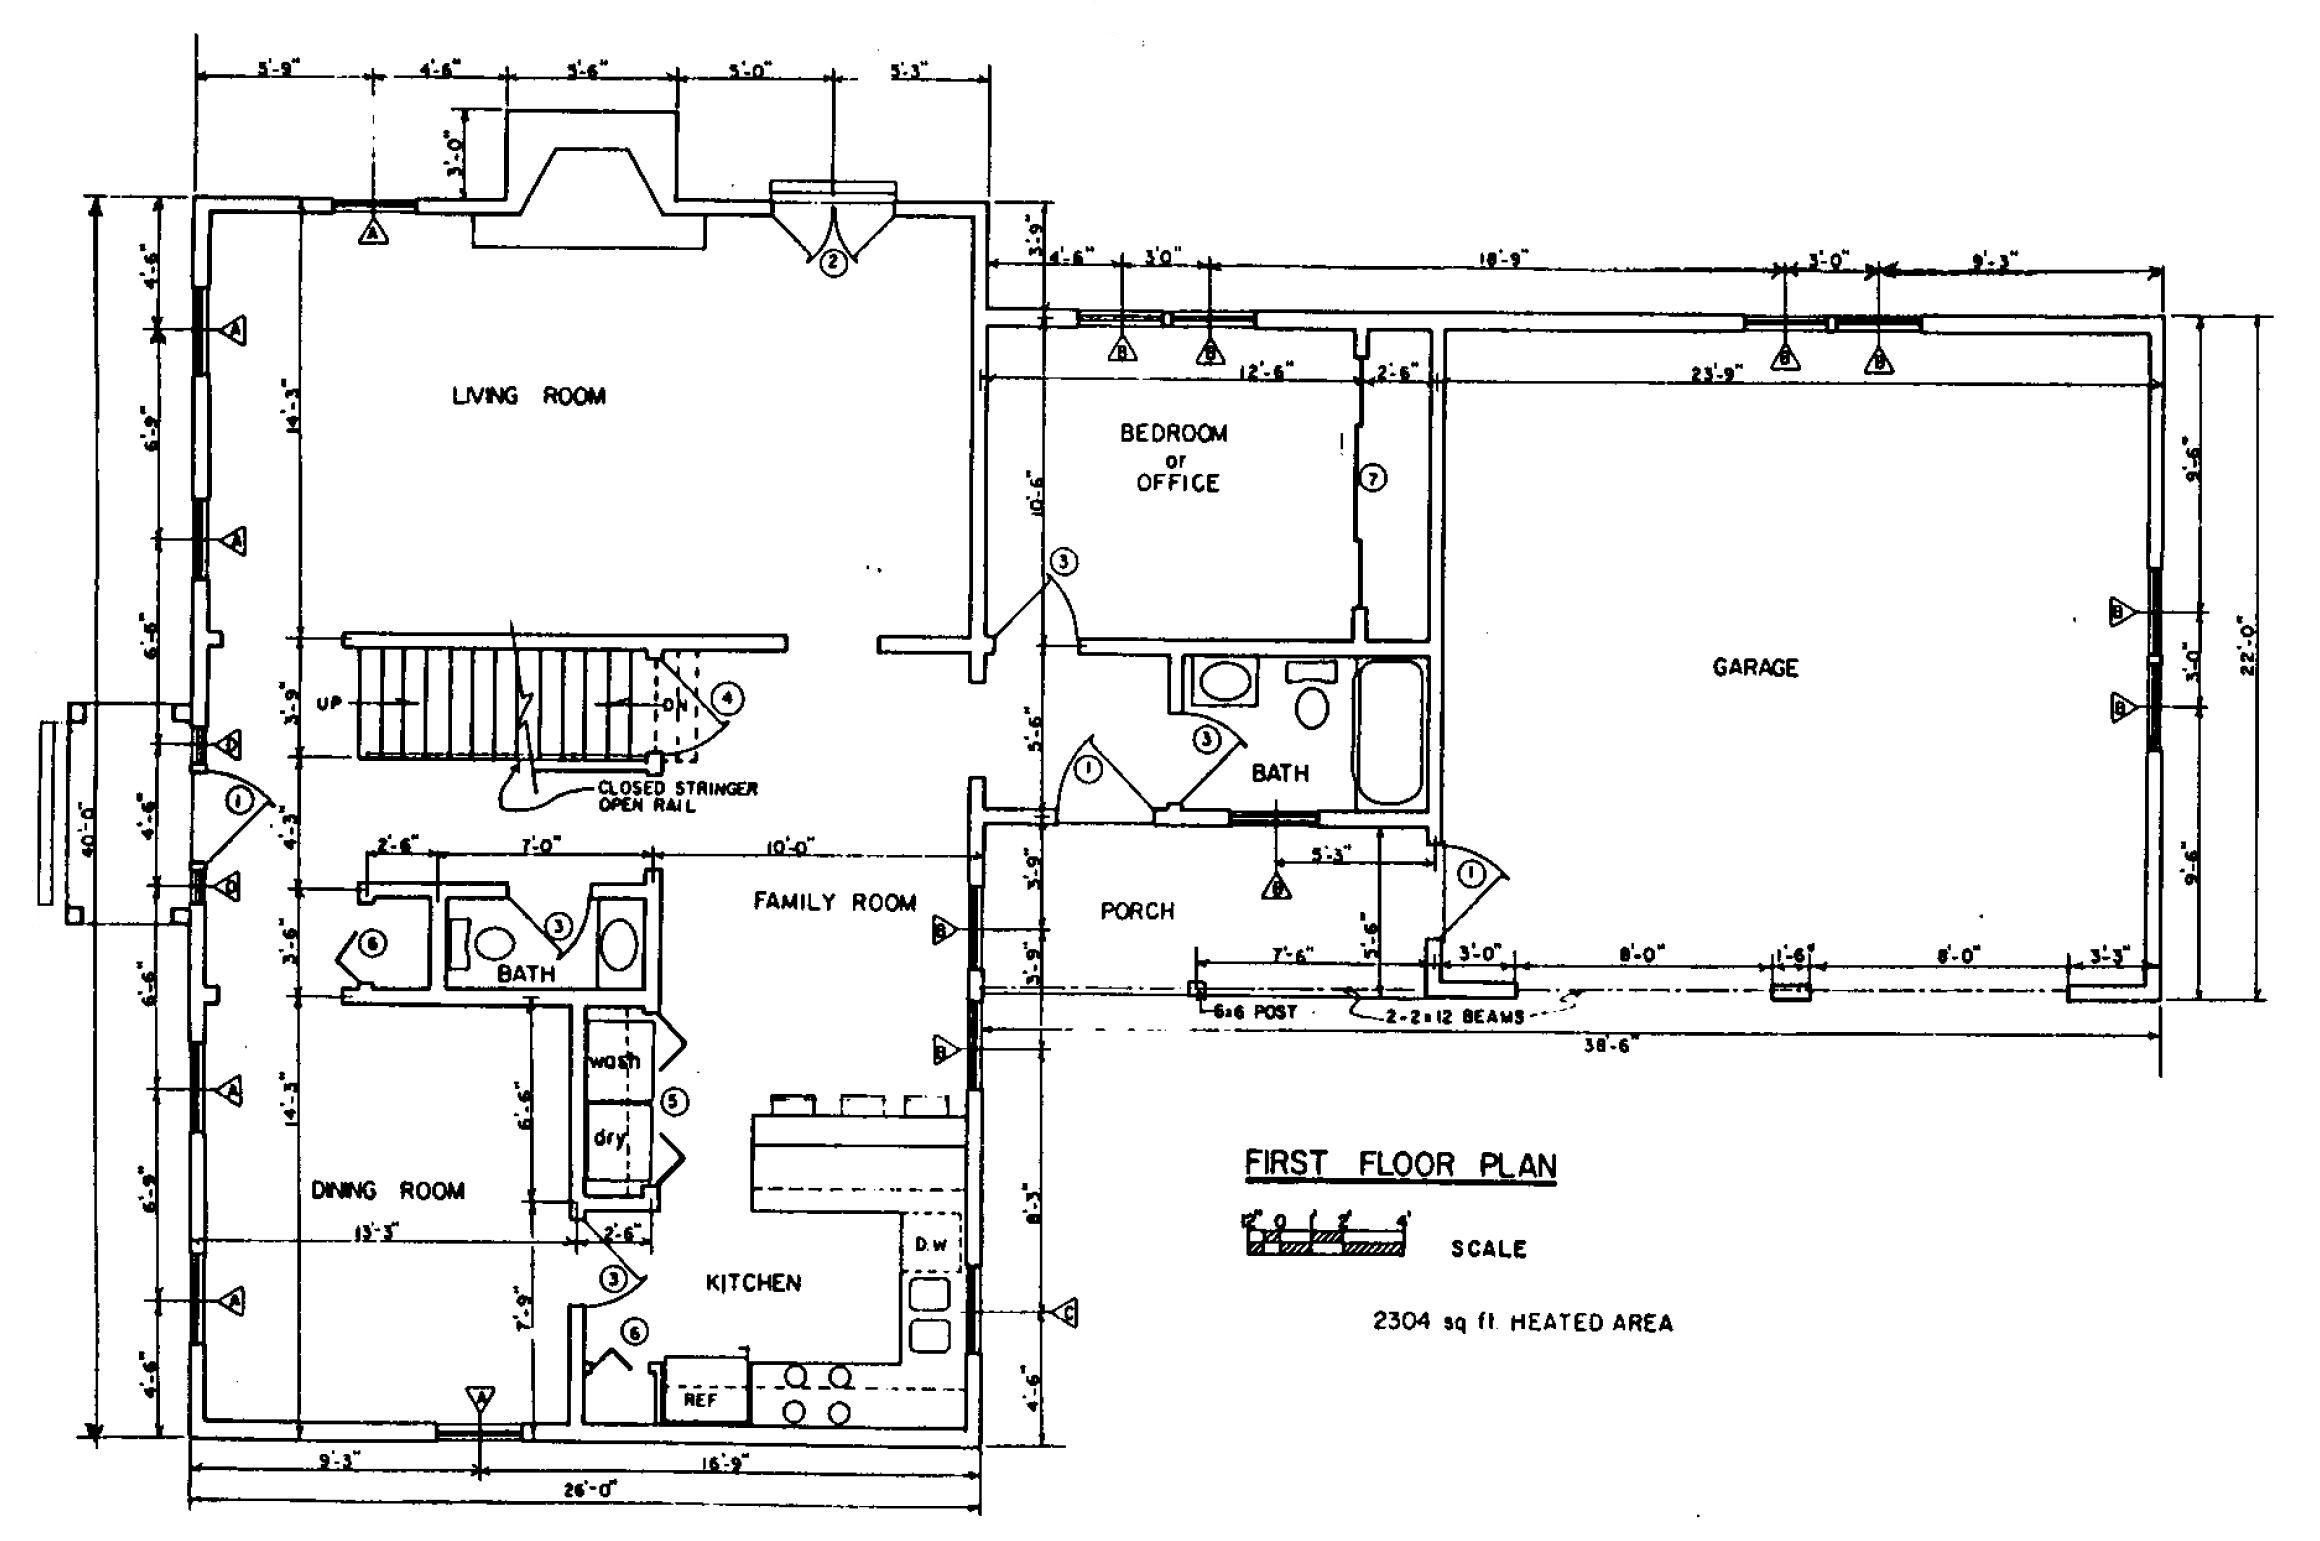 House Plans Designs | Floor Plans | Building Plans at AmazingPlans.com